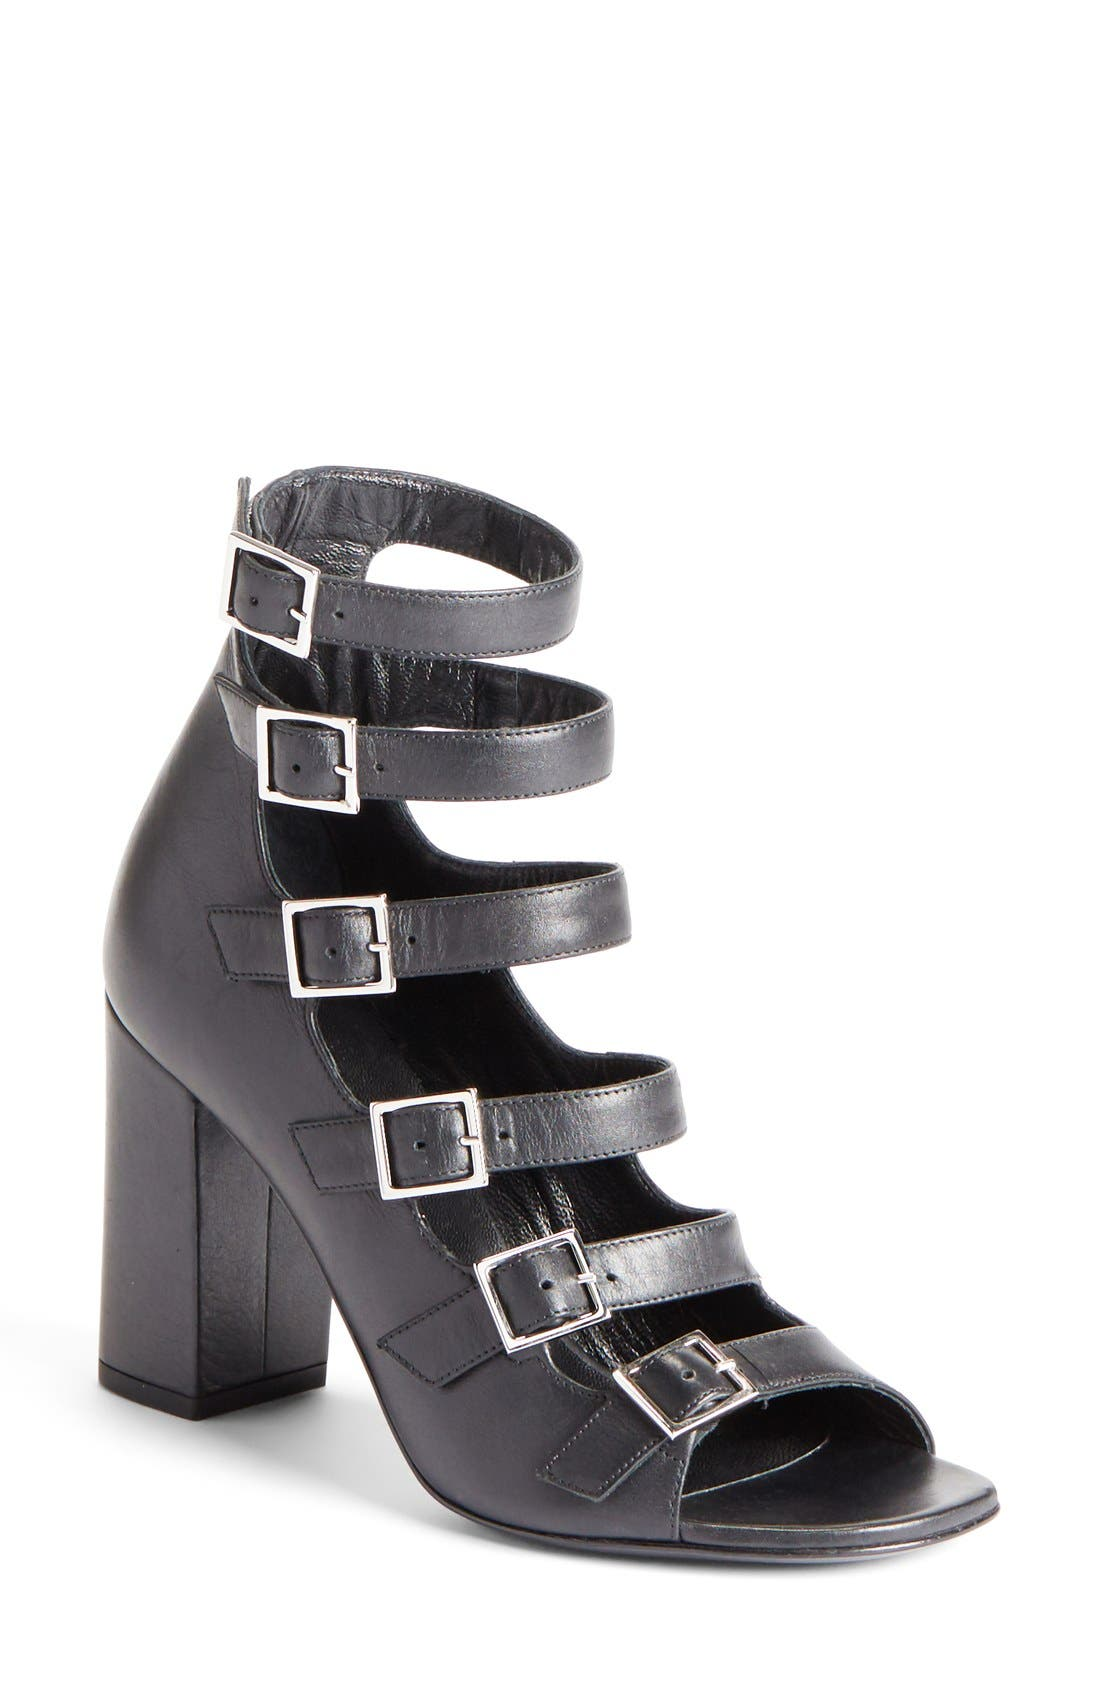 Main Image - Saint Laurent 'Babies' Buckle Strap Sandal (Women)